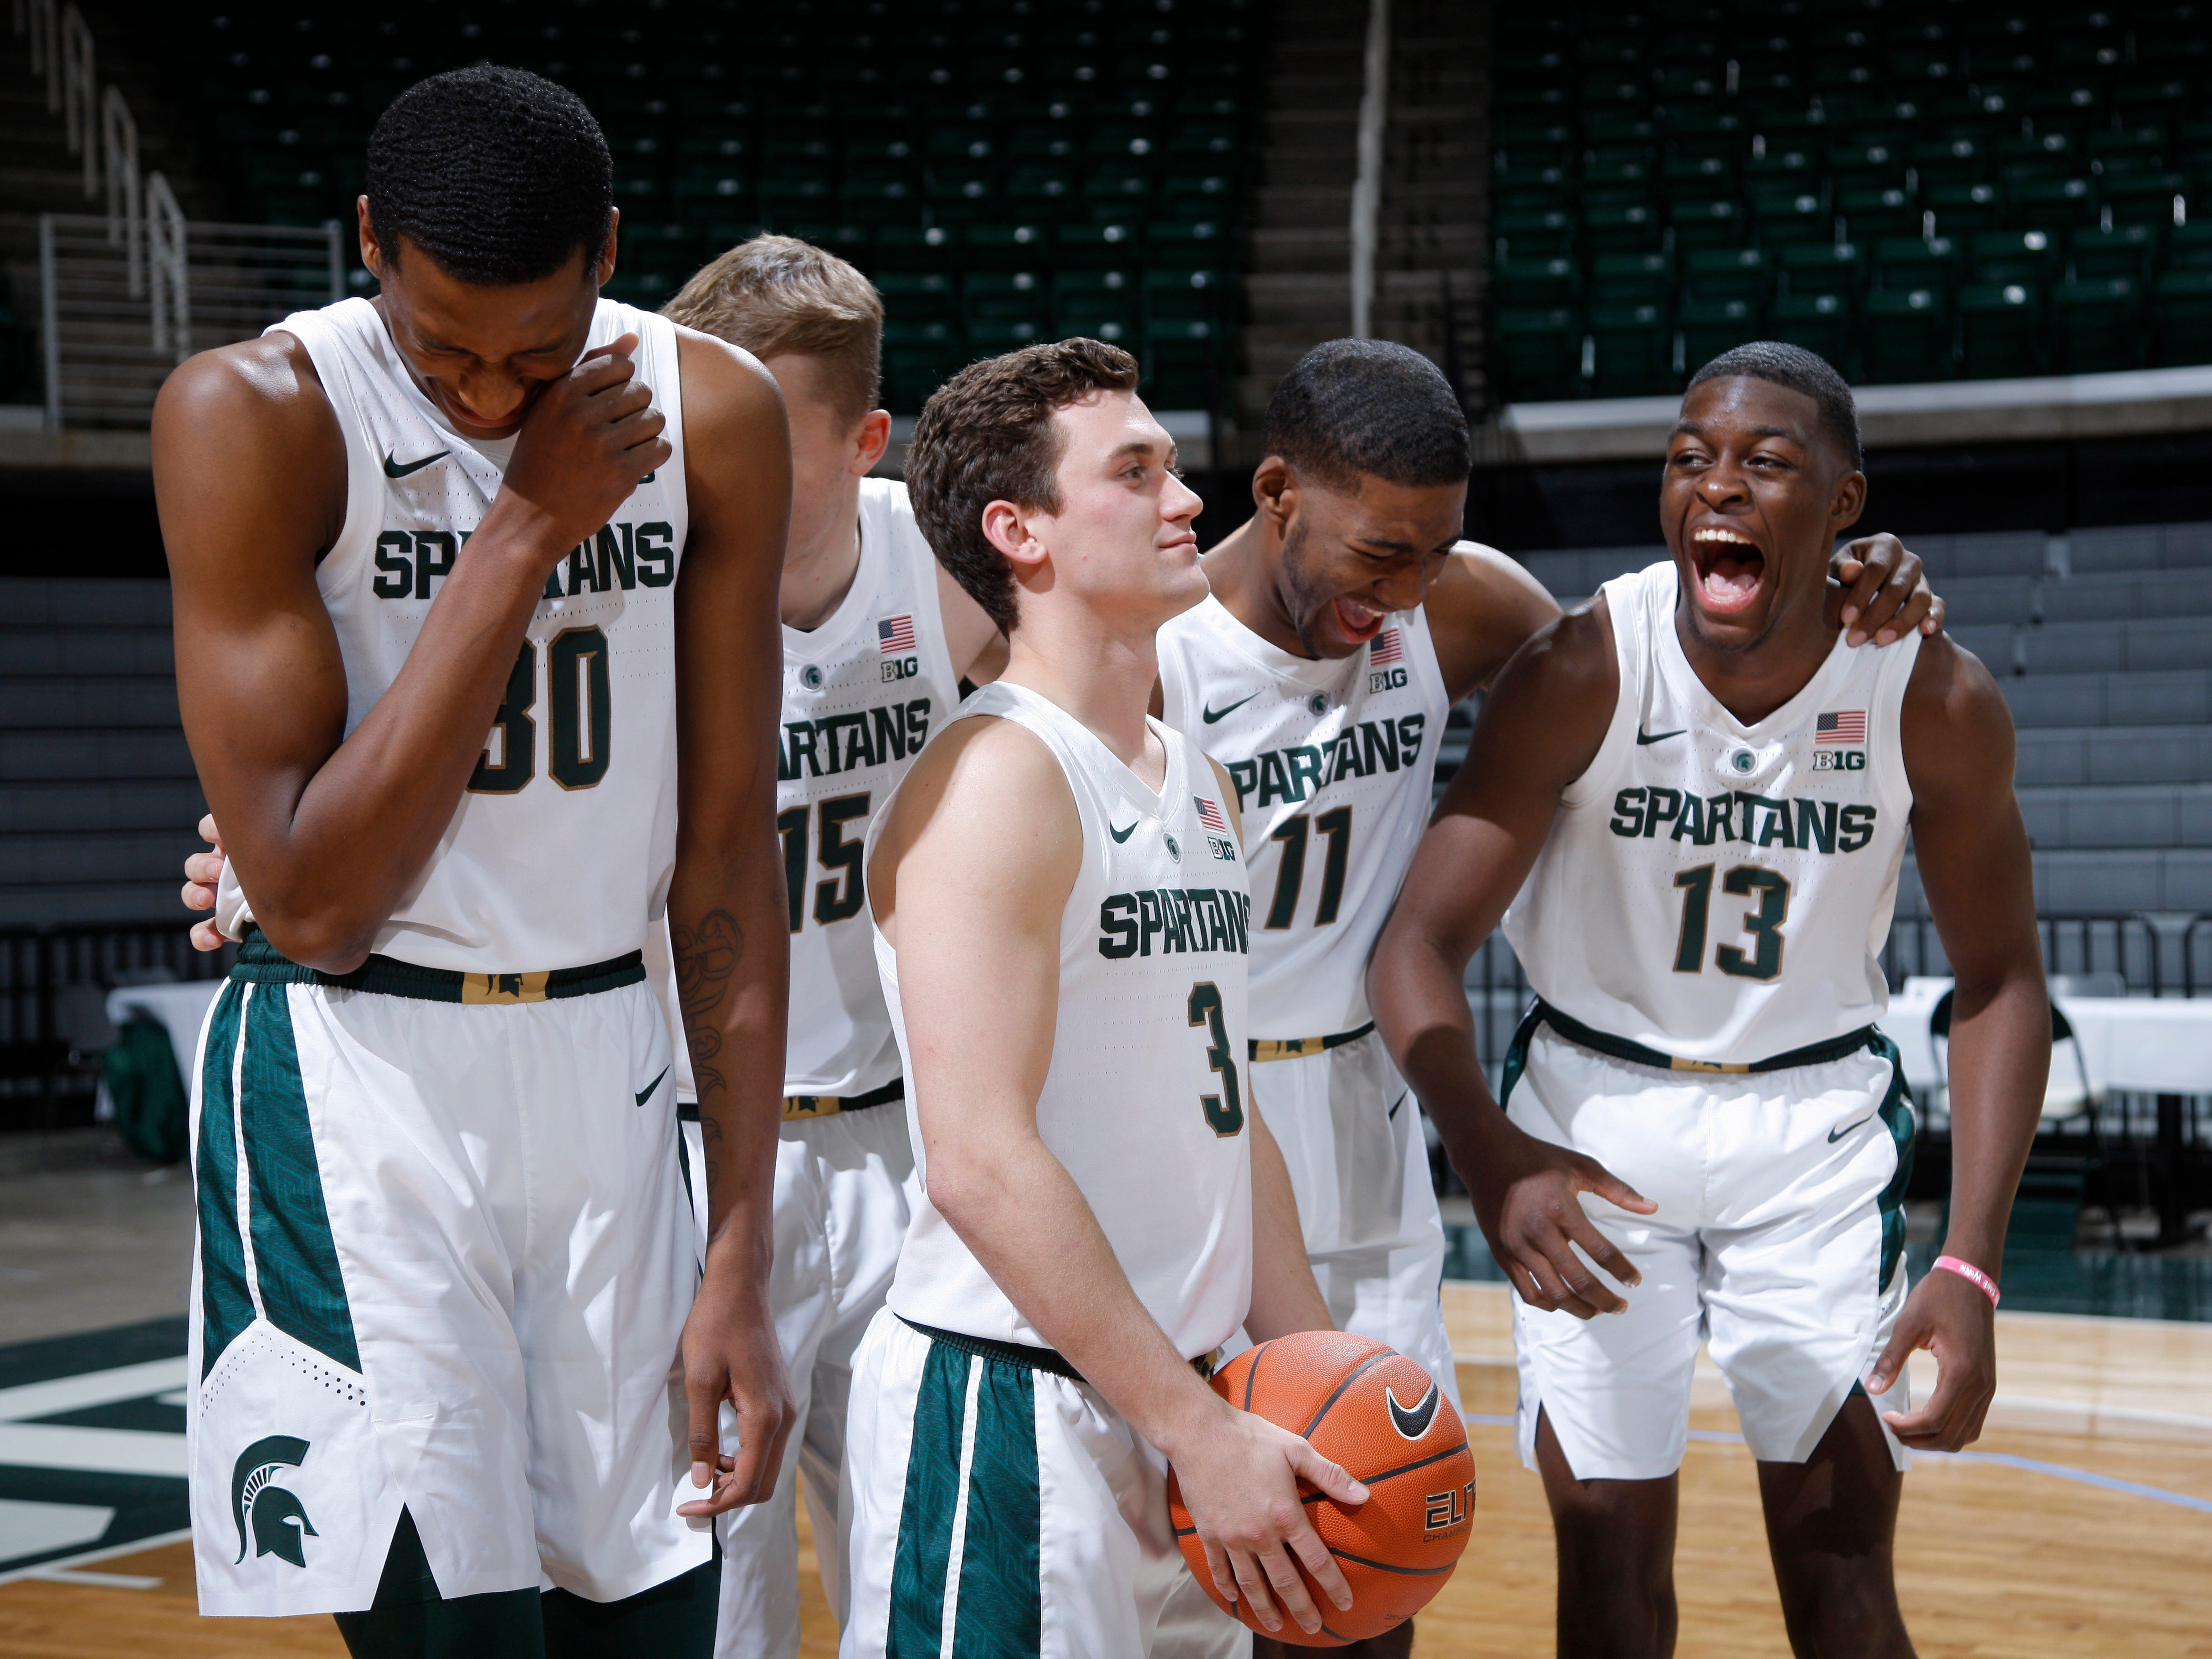 Michigan State freshmen from left, Marcus Bingham Jr., Thomas Kithier, Foster Loyer, Aaron Henry and Gabe Brown laugh while being photographed during the team's media day, Thursday, Oct. 25, 2018, in East Lansing, Mich.